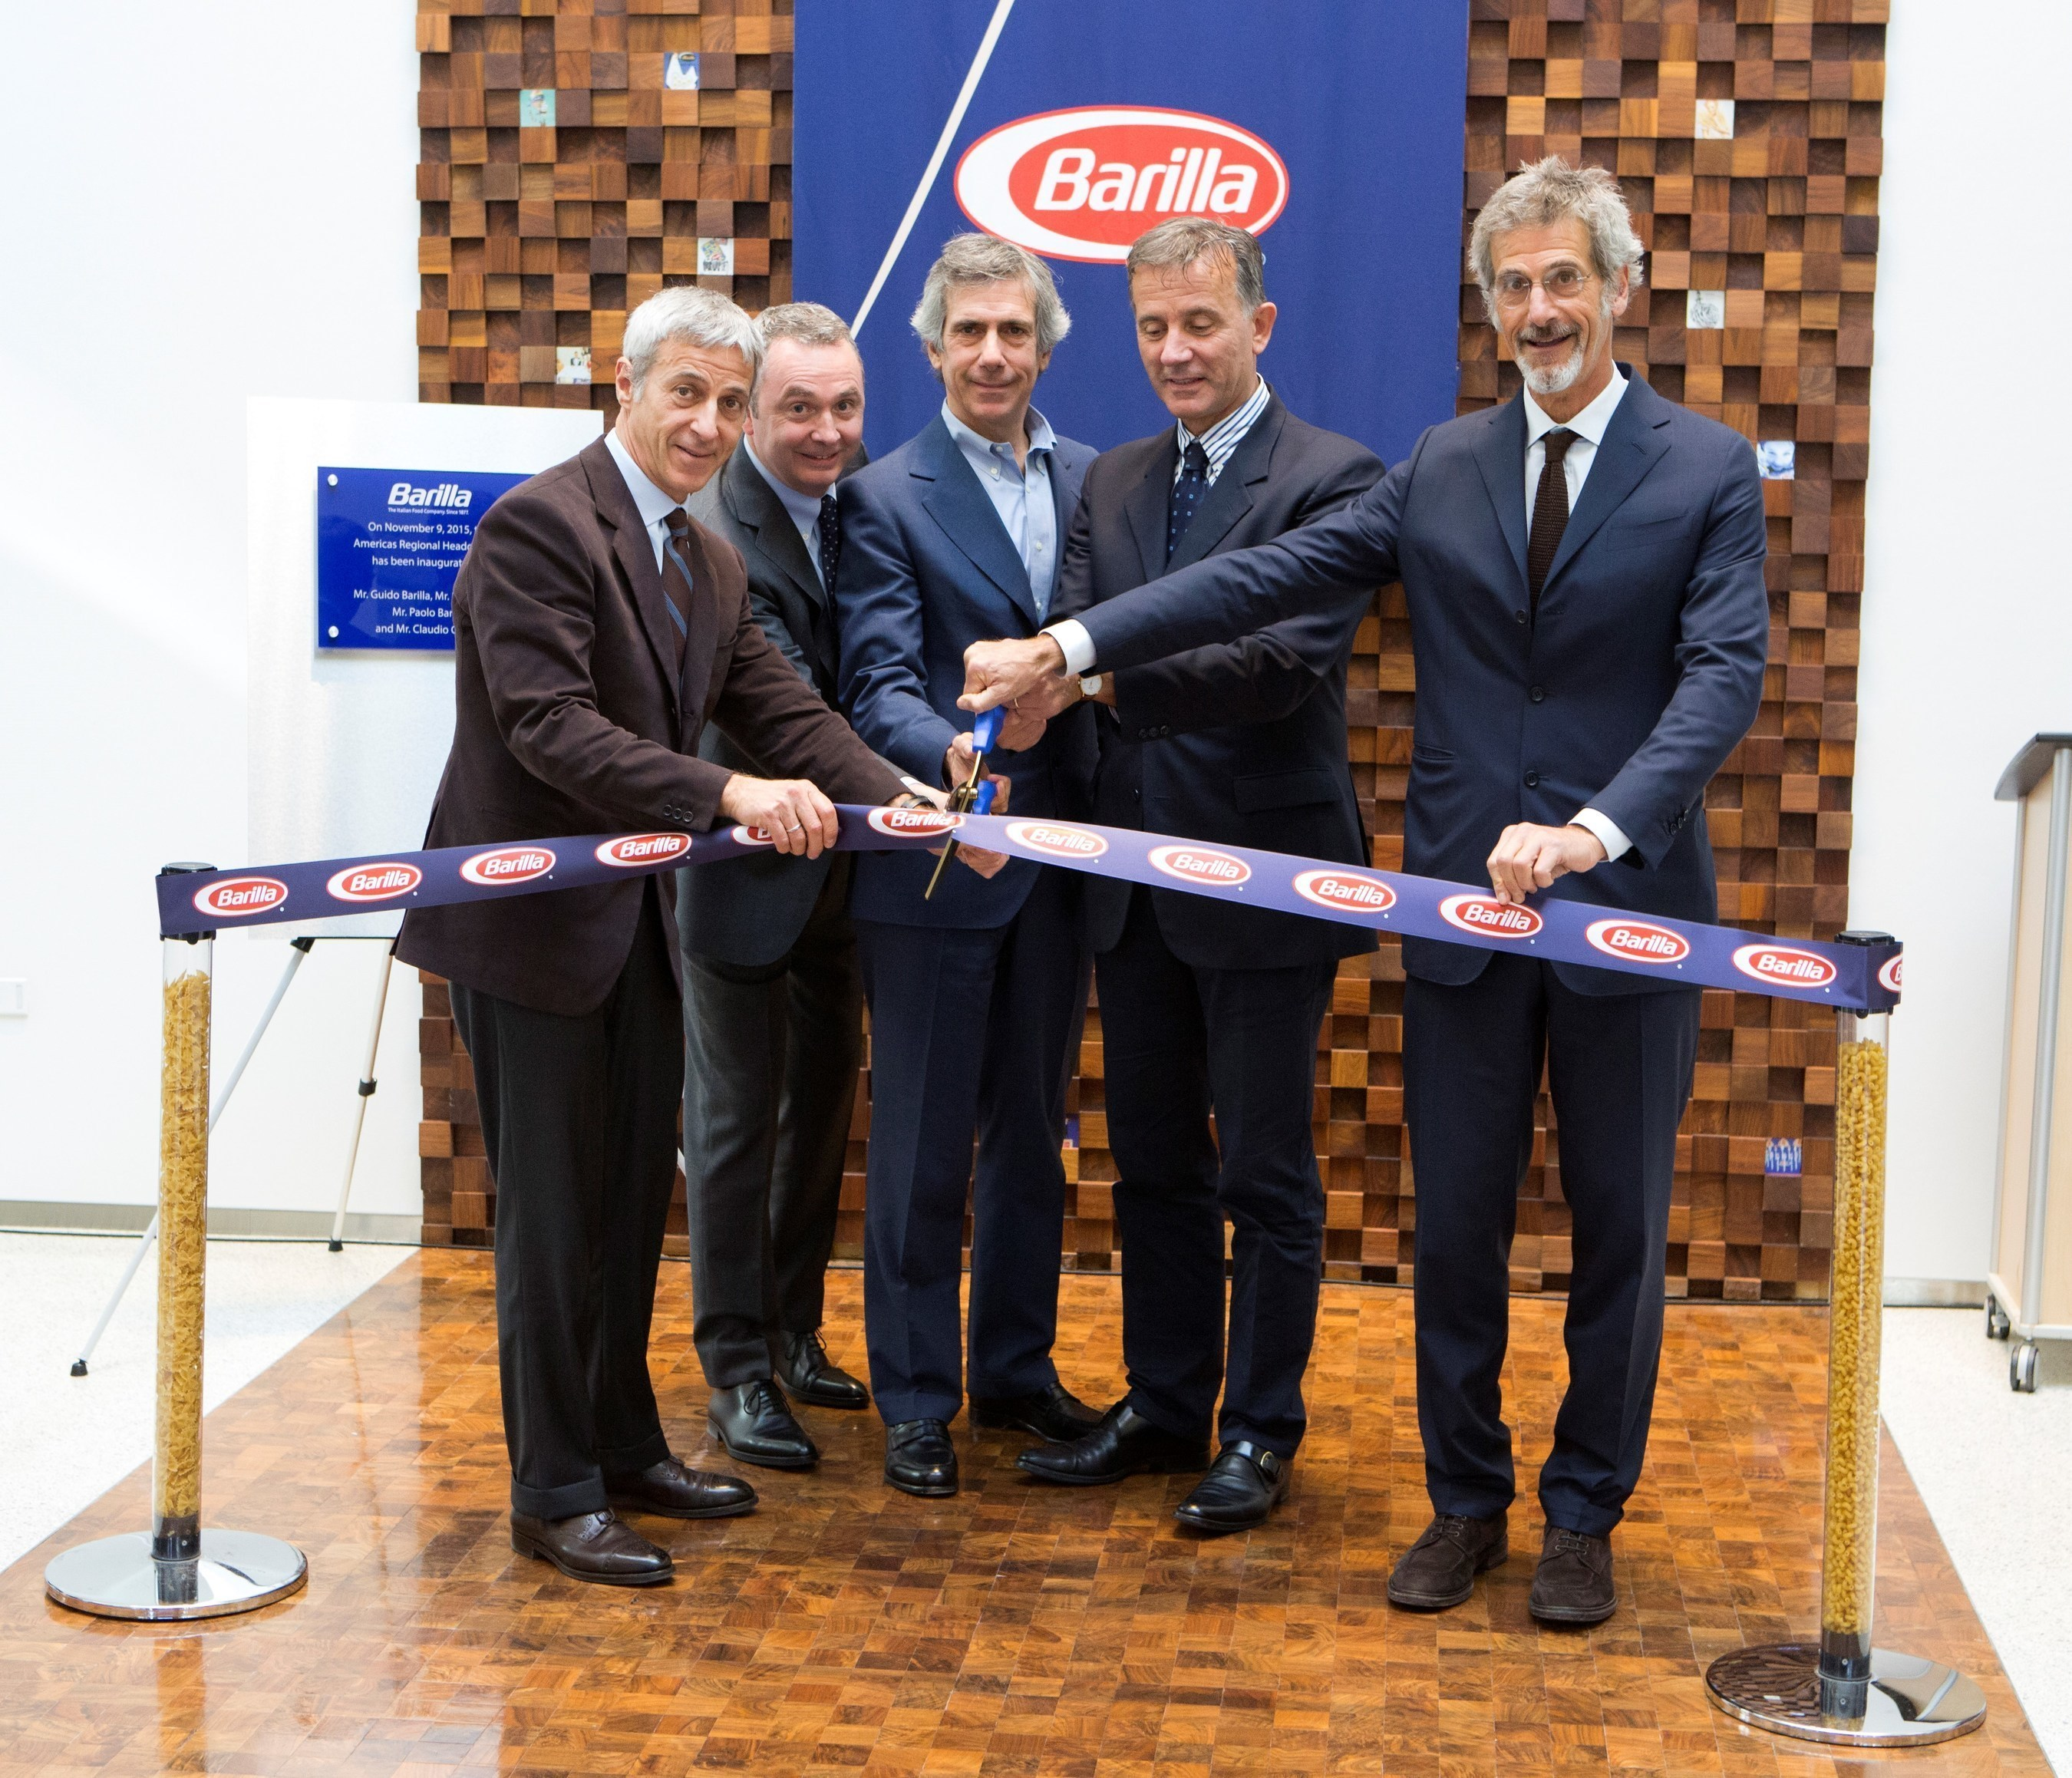 """Barilla leaders celebrate the grand opening of their new Region Americas Headquarters at 885 Sunset Ridge Rd., in Northbrook, Ill., designed to foster collaboration with an """"outside-in"""" approach-key to Barilla's growth strategy. (From left: Vice Chairman Luca Barilla, Region Americas President Jean-Pierre Comte, Vice Chairman Paolo Barilla, CEO Claudio Colzani, Chairman Guido Barilla)."""